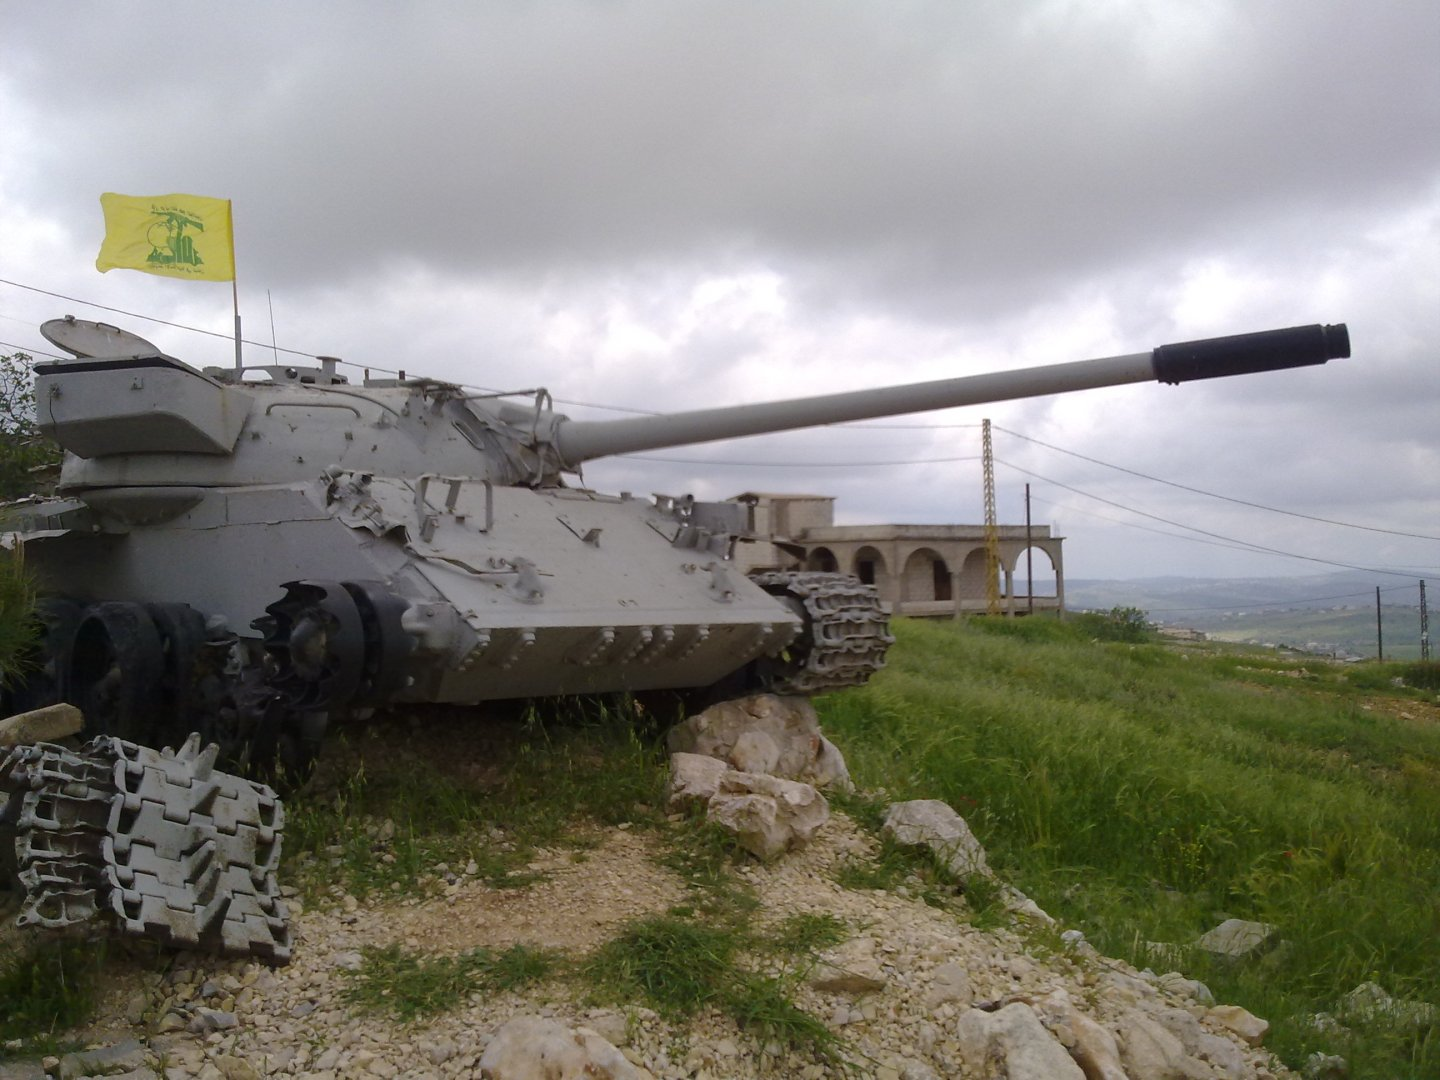 Hezbollah flag mounted on a tank